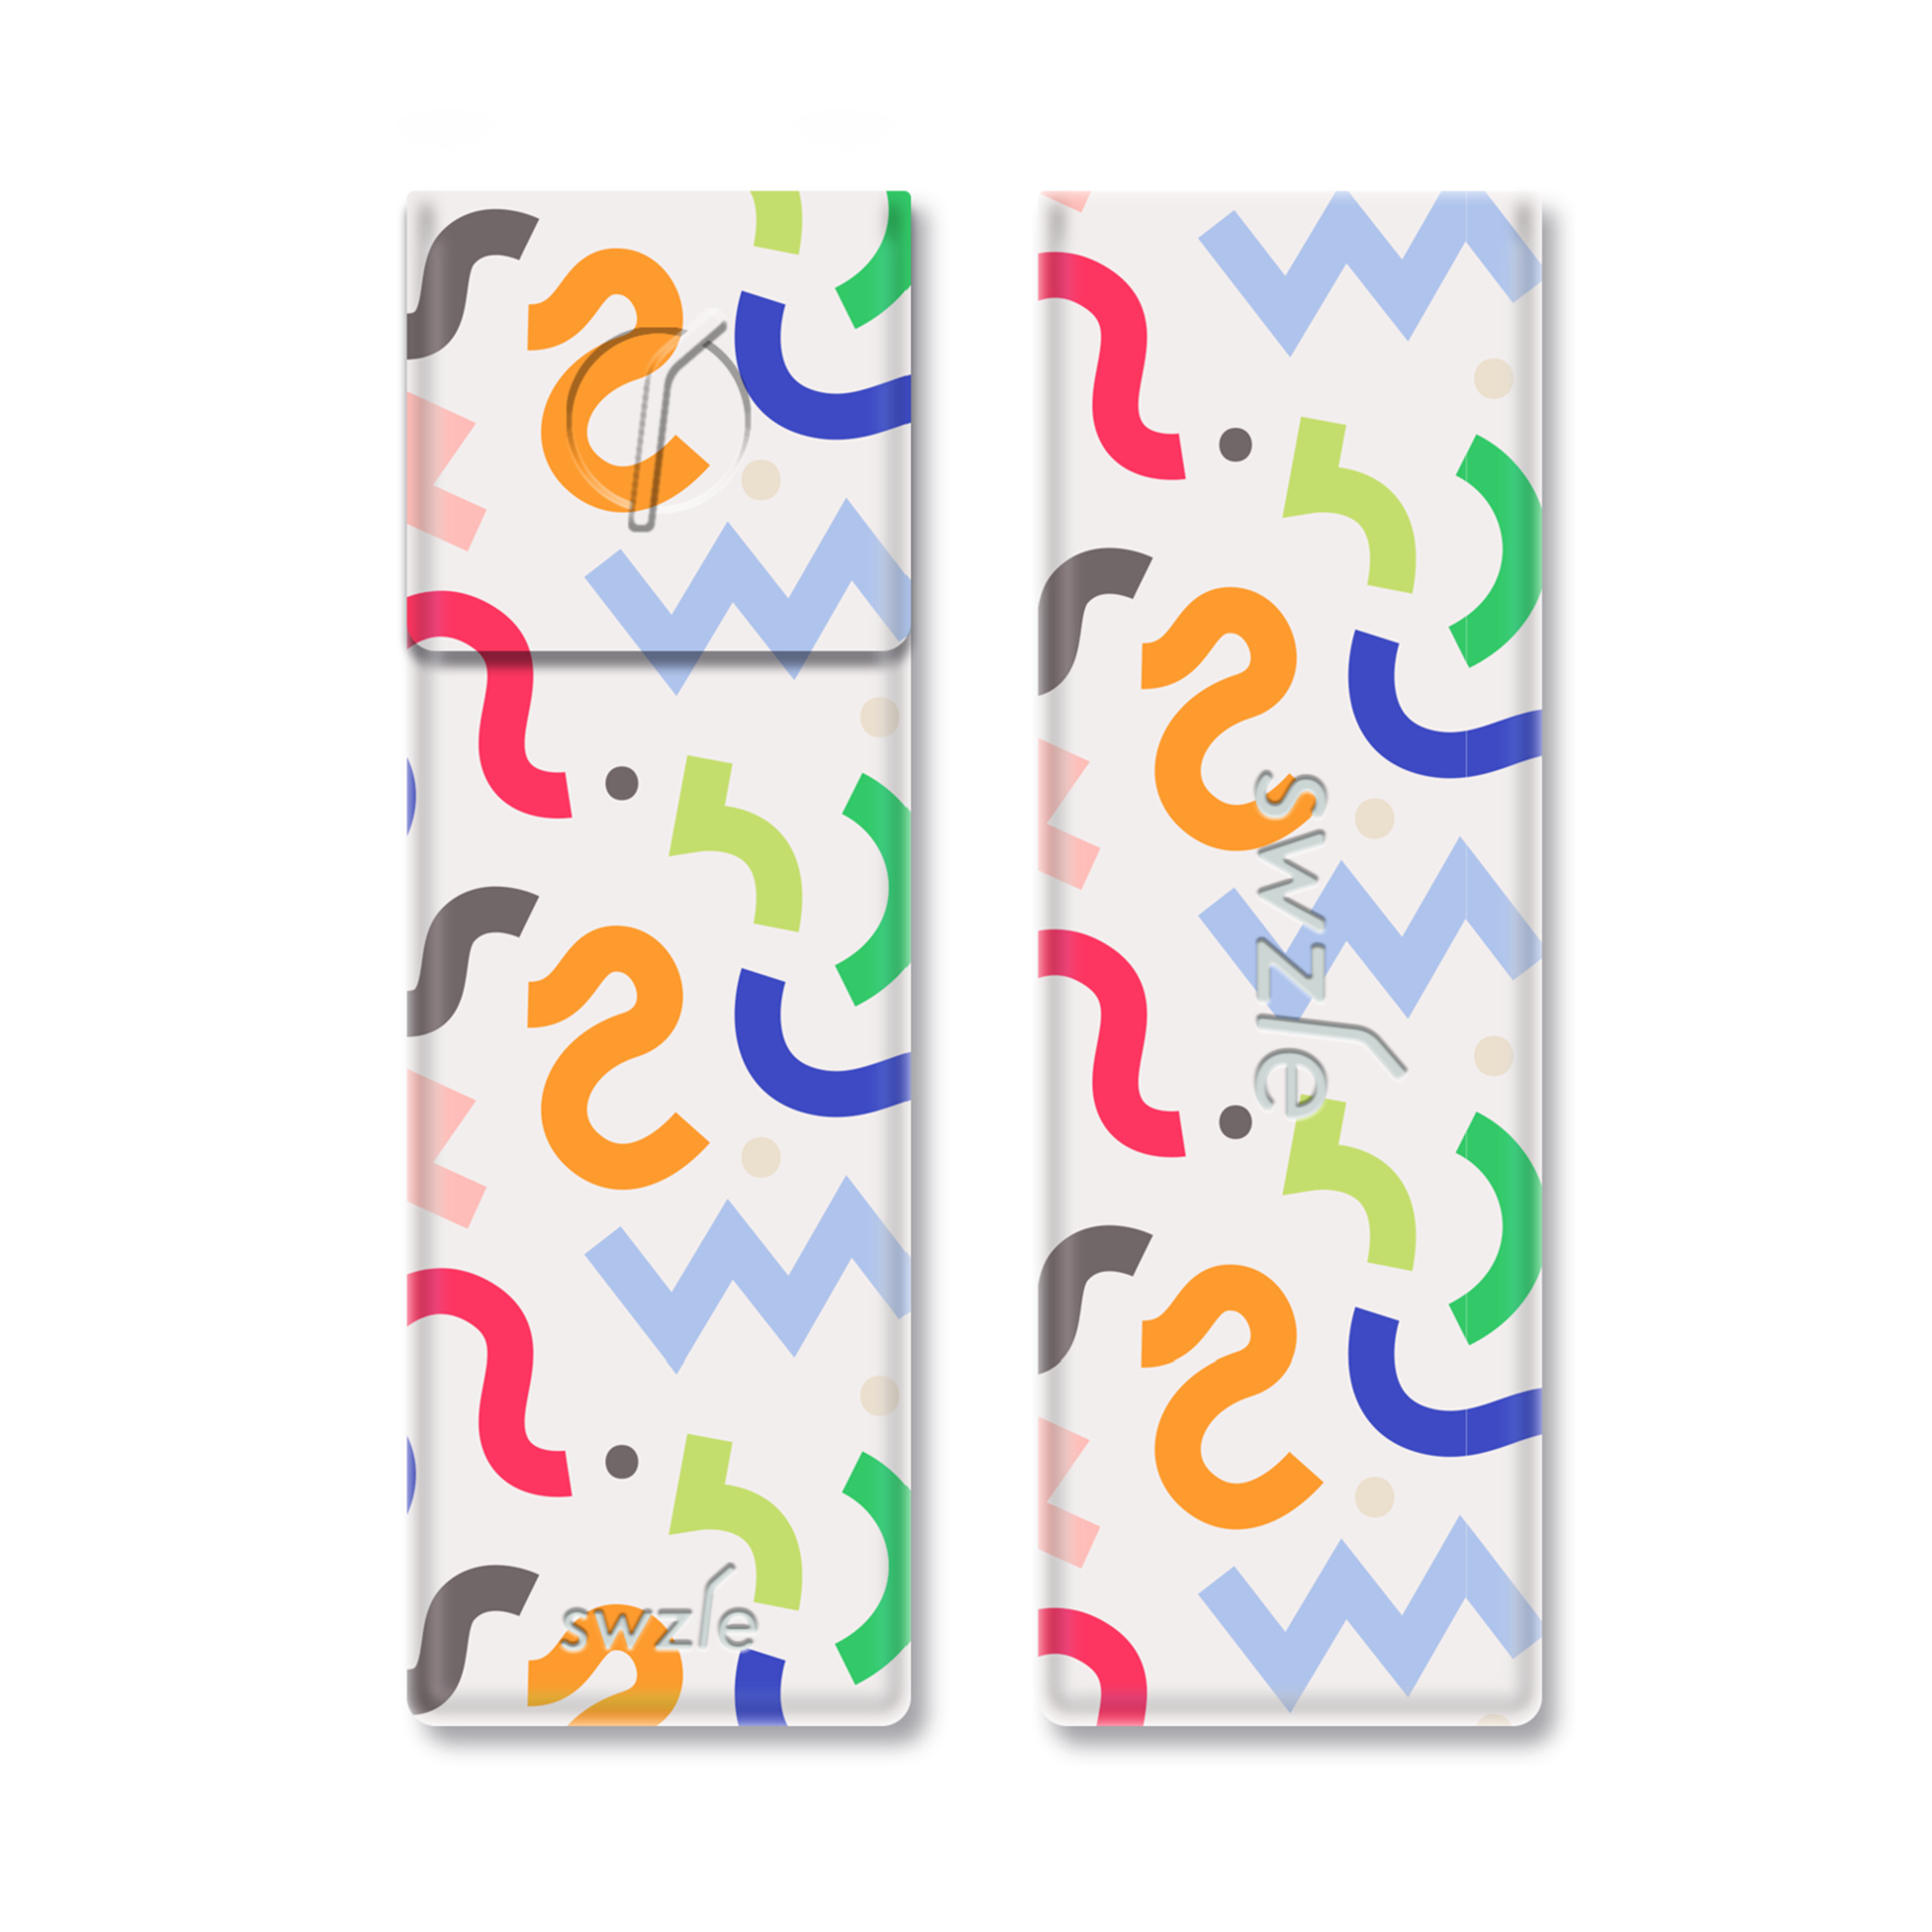 SWZLE Drinking Straw Carrying Case - Squiggle